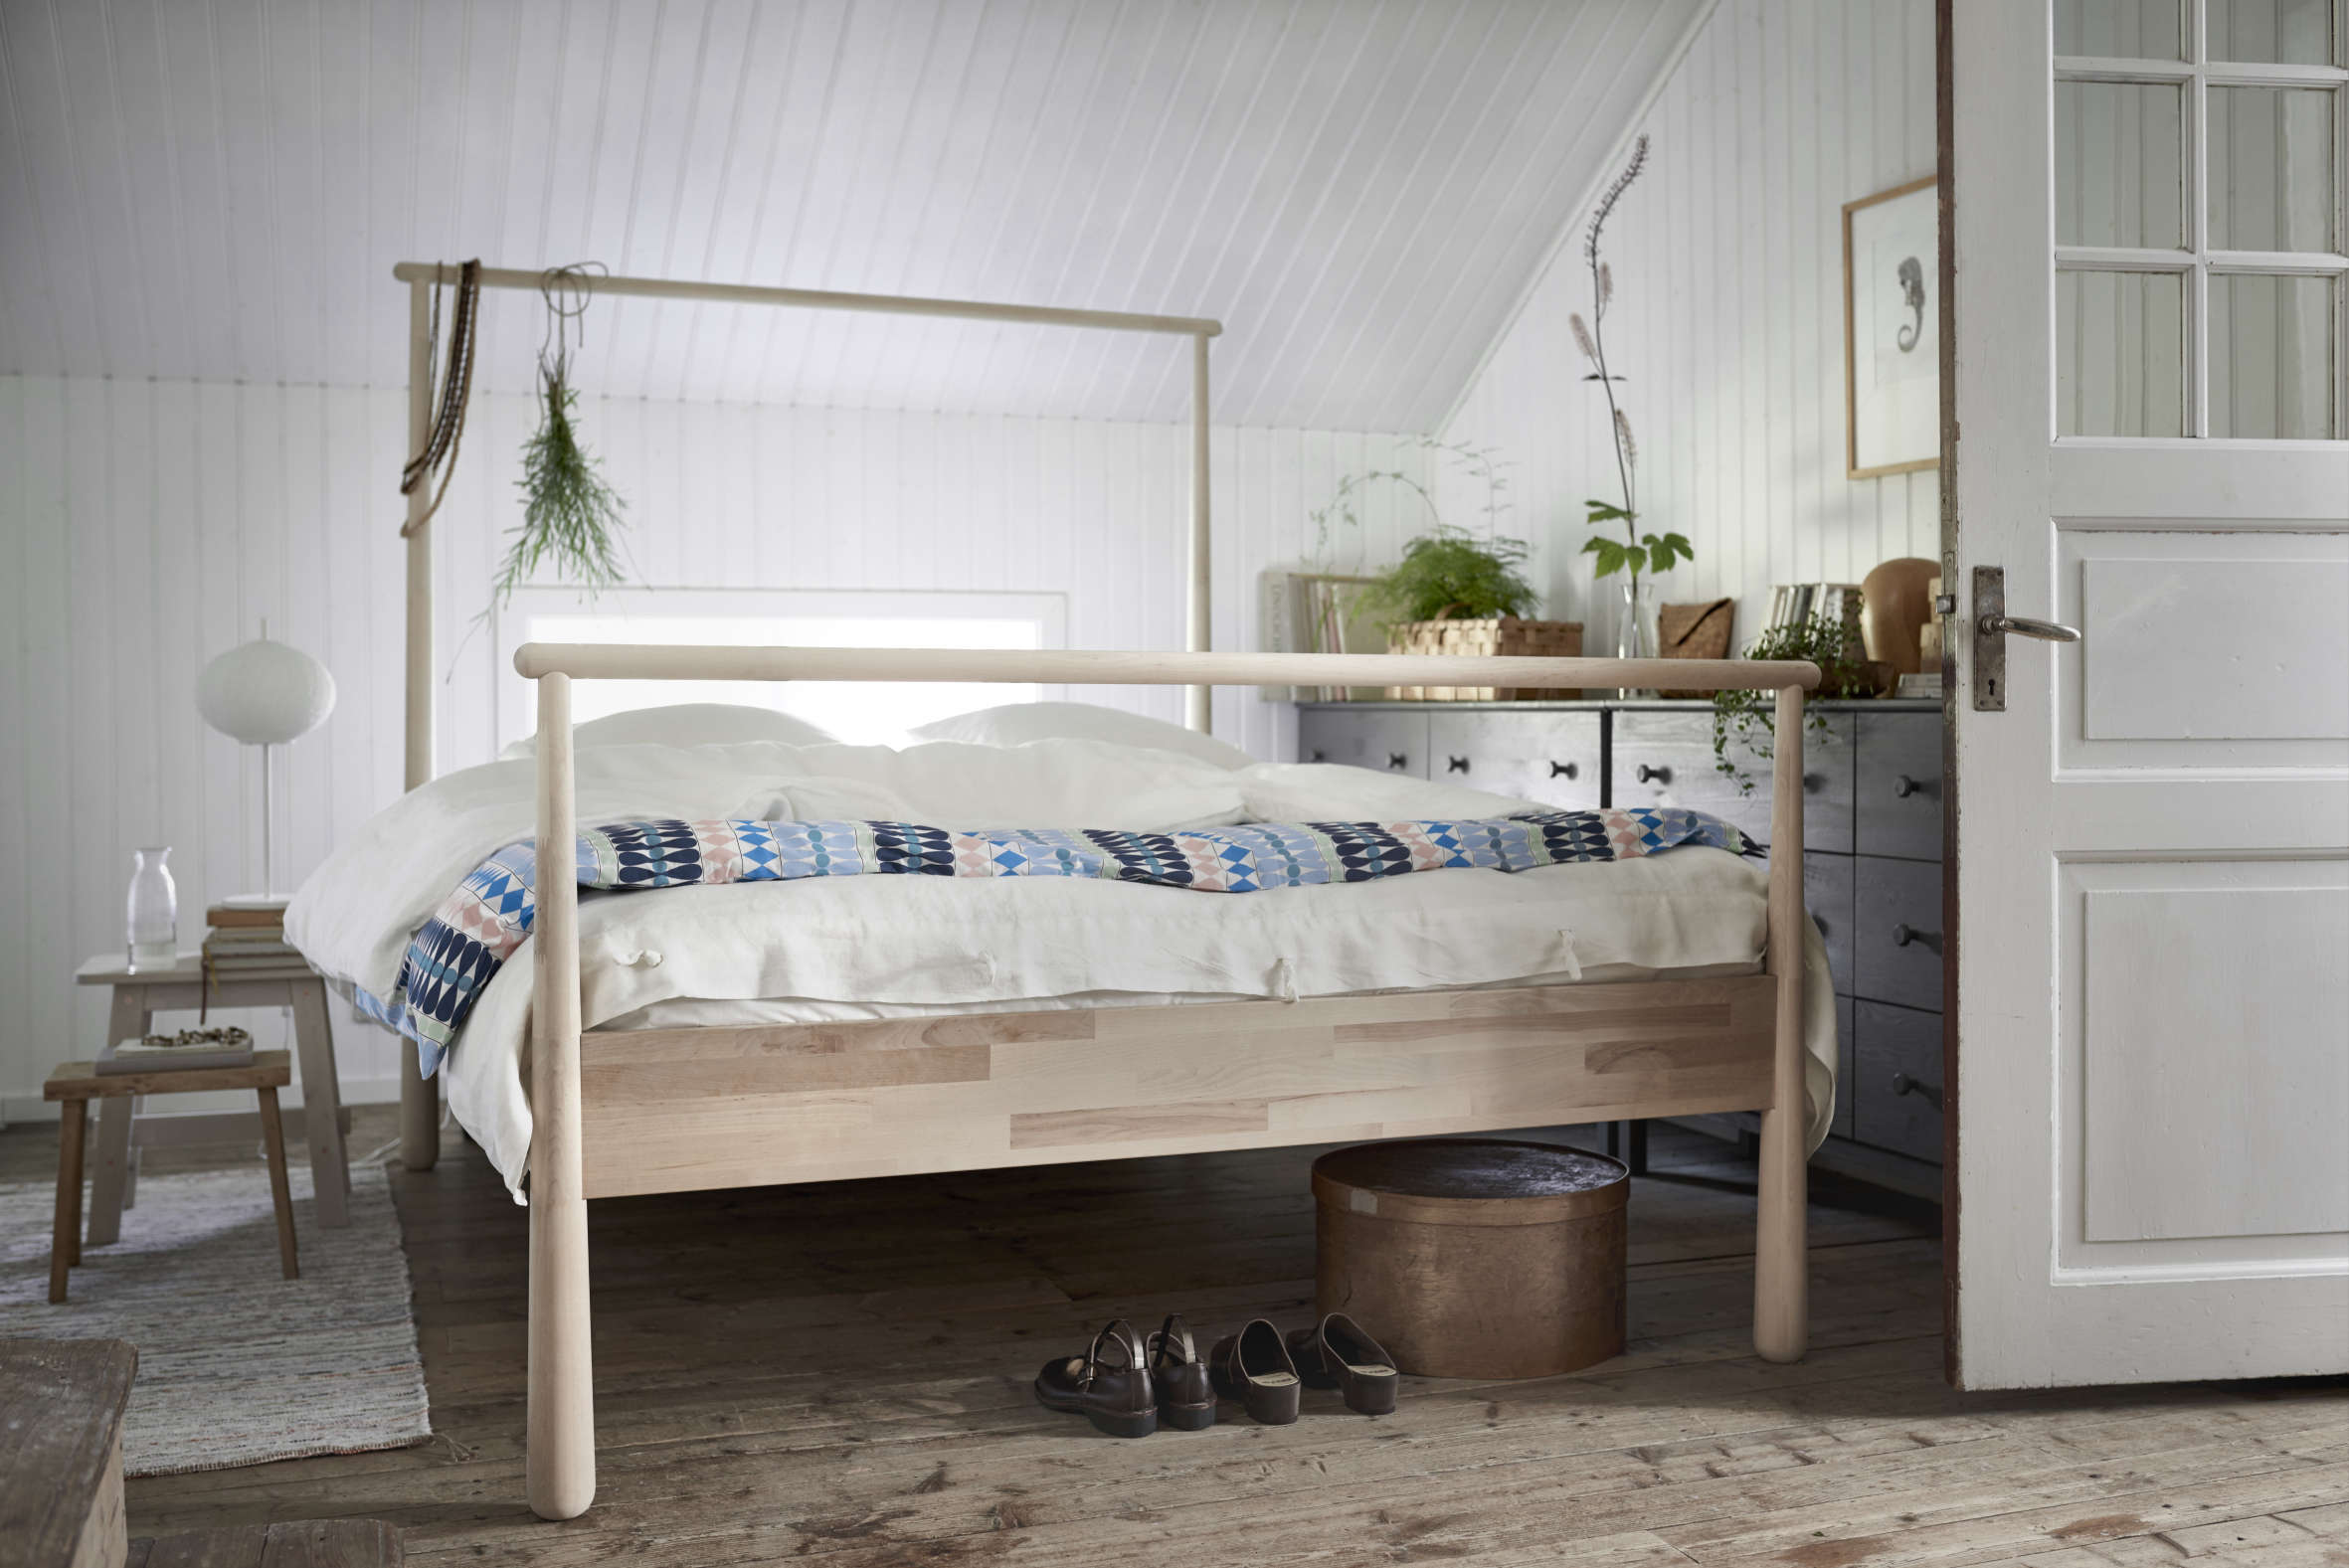 Beds & Headboards Curated Collection from Remodelista